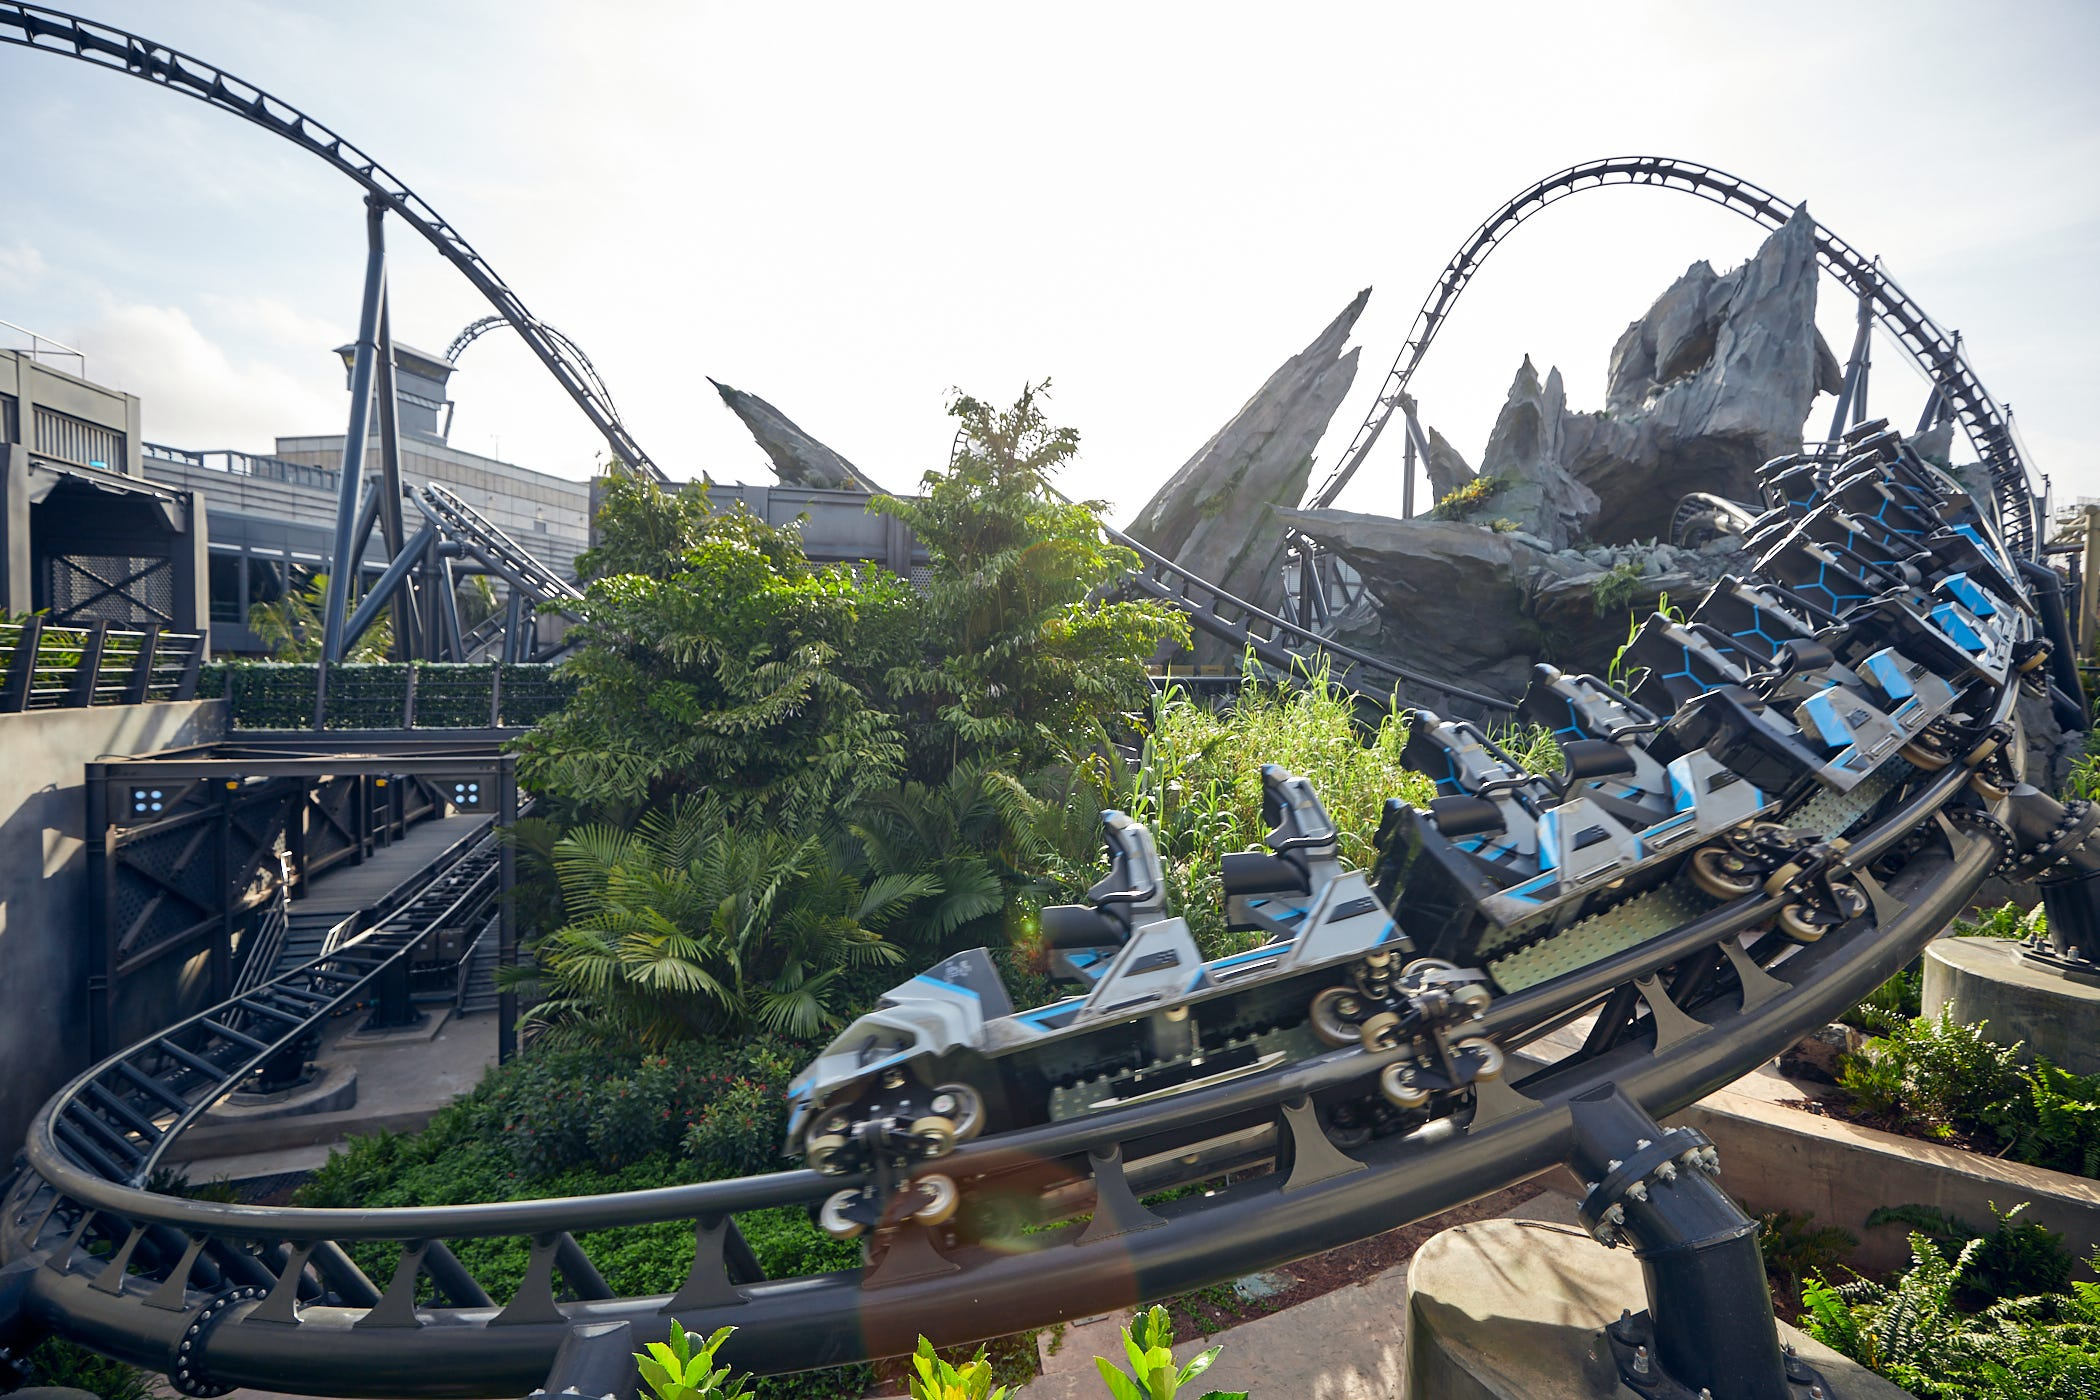 Roller coaster review: Universal Orlando's Jurassic World ride is open, and it's terrifying